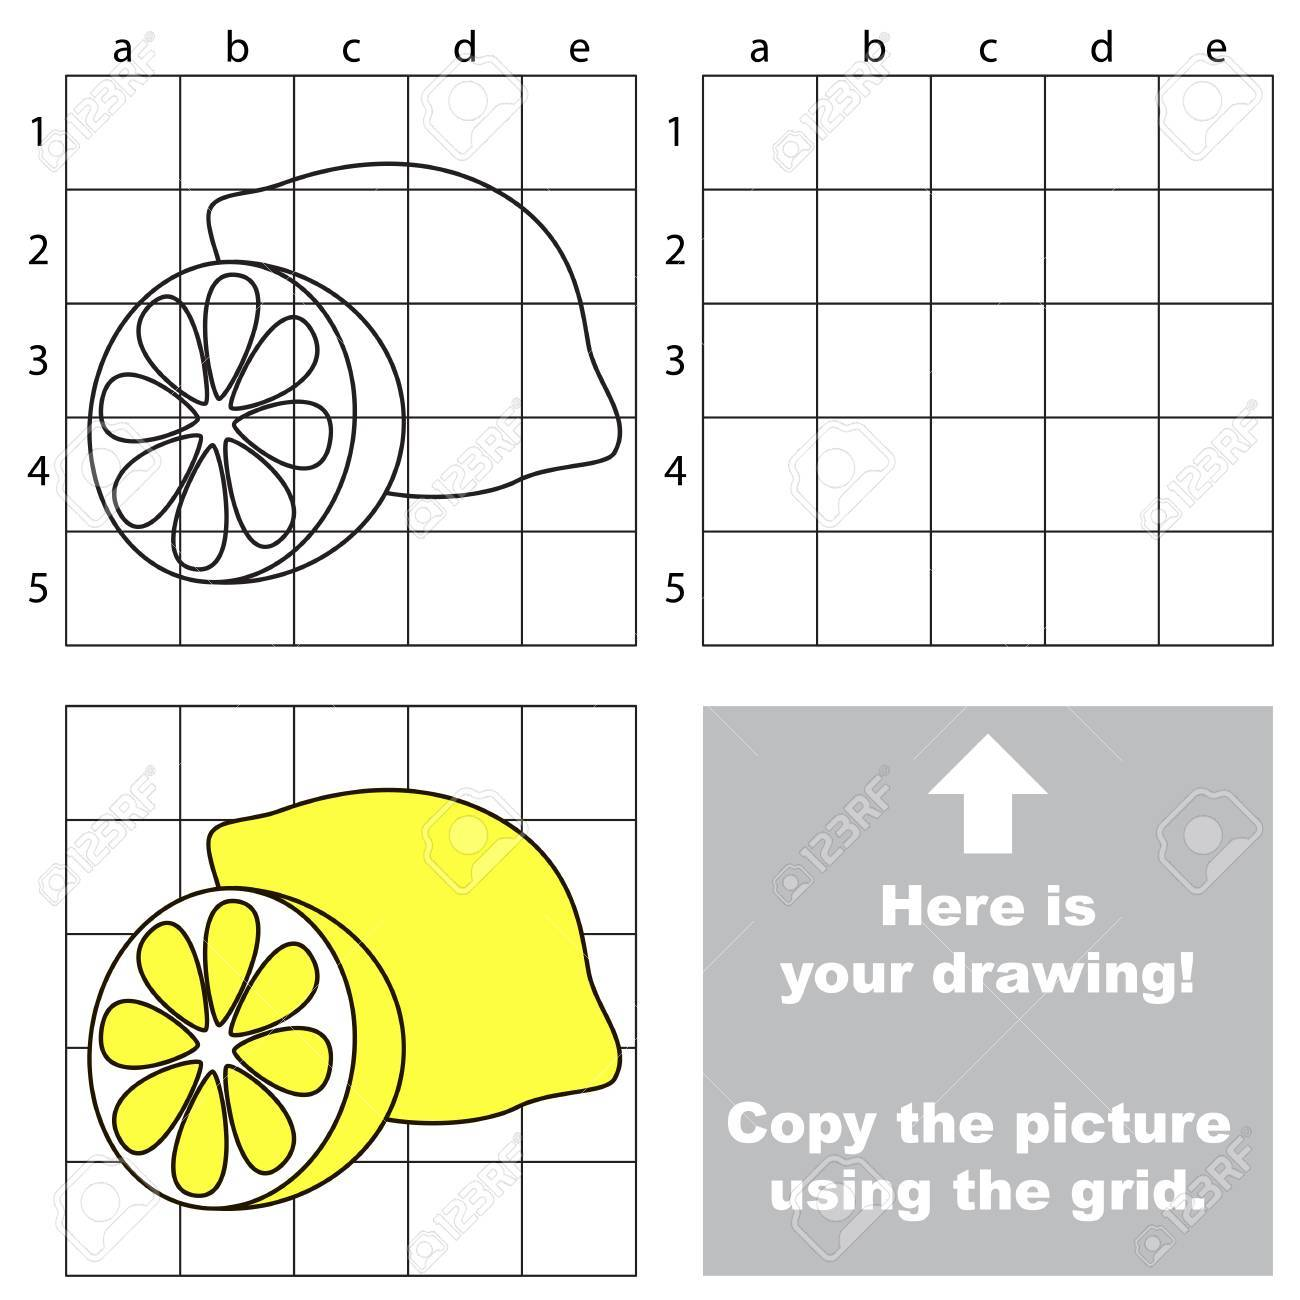 drawing using a grid for kids archives easy drawings